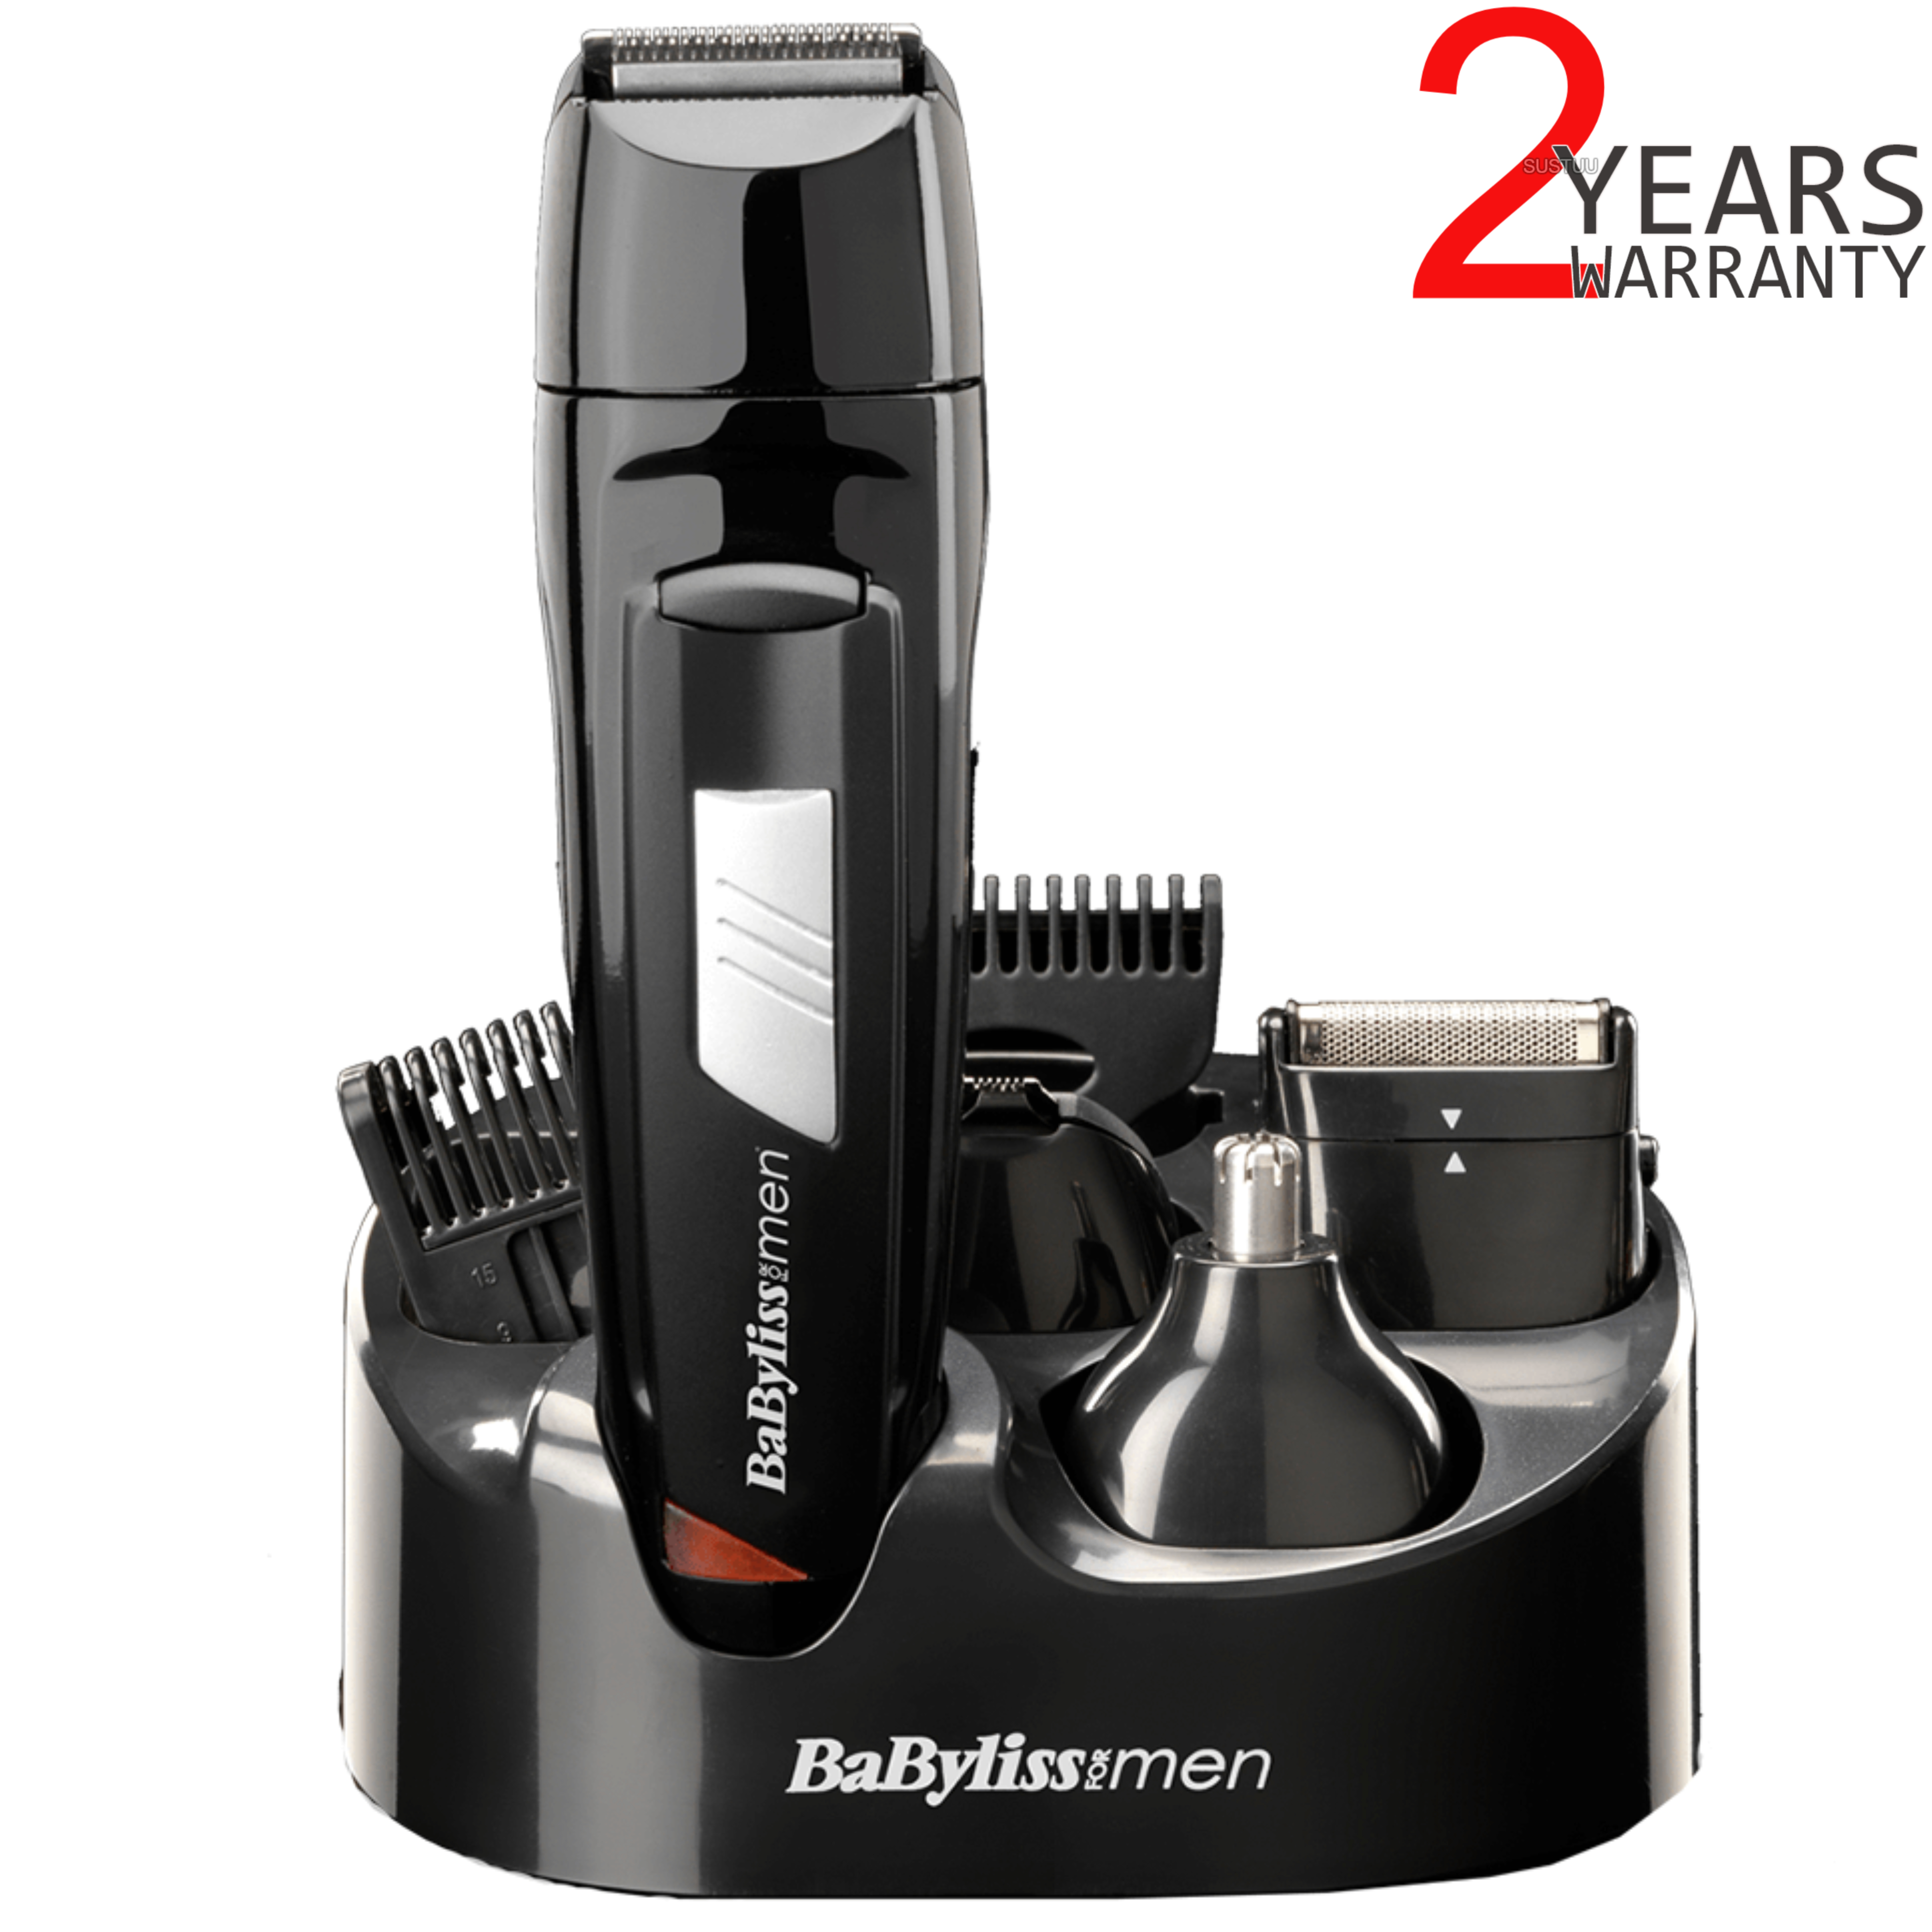 BaByliss 7056CU Rechargeable 8-in-1 All Over Grooming Shaver Clipper Kit for Men